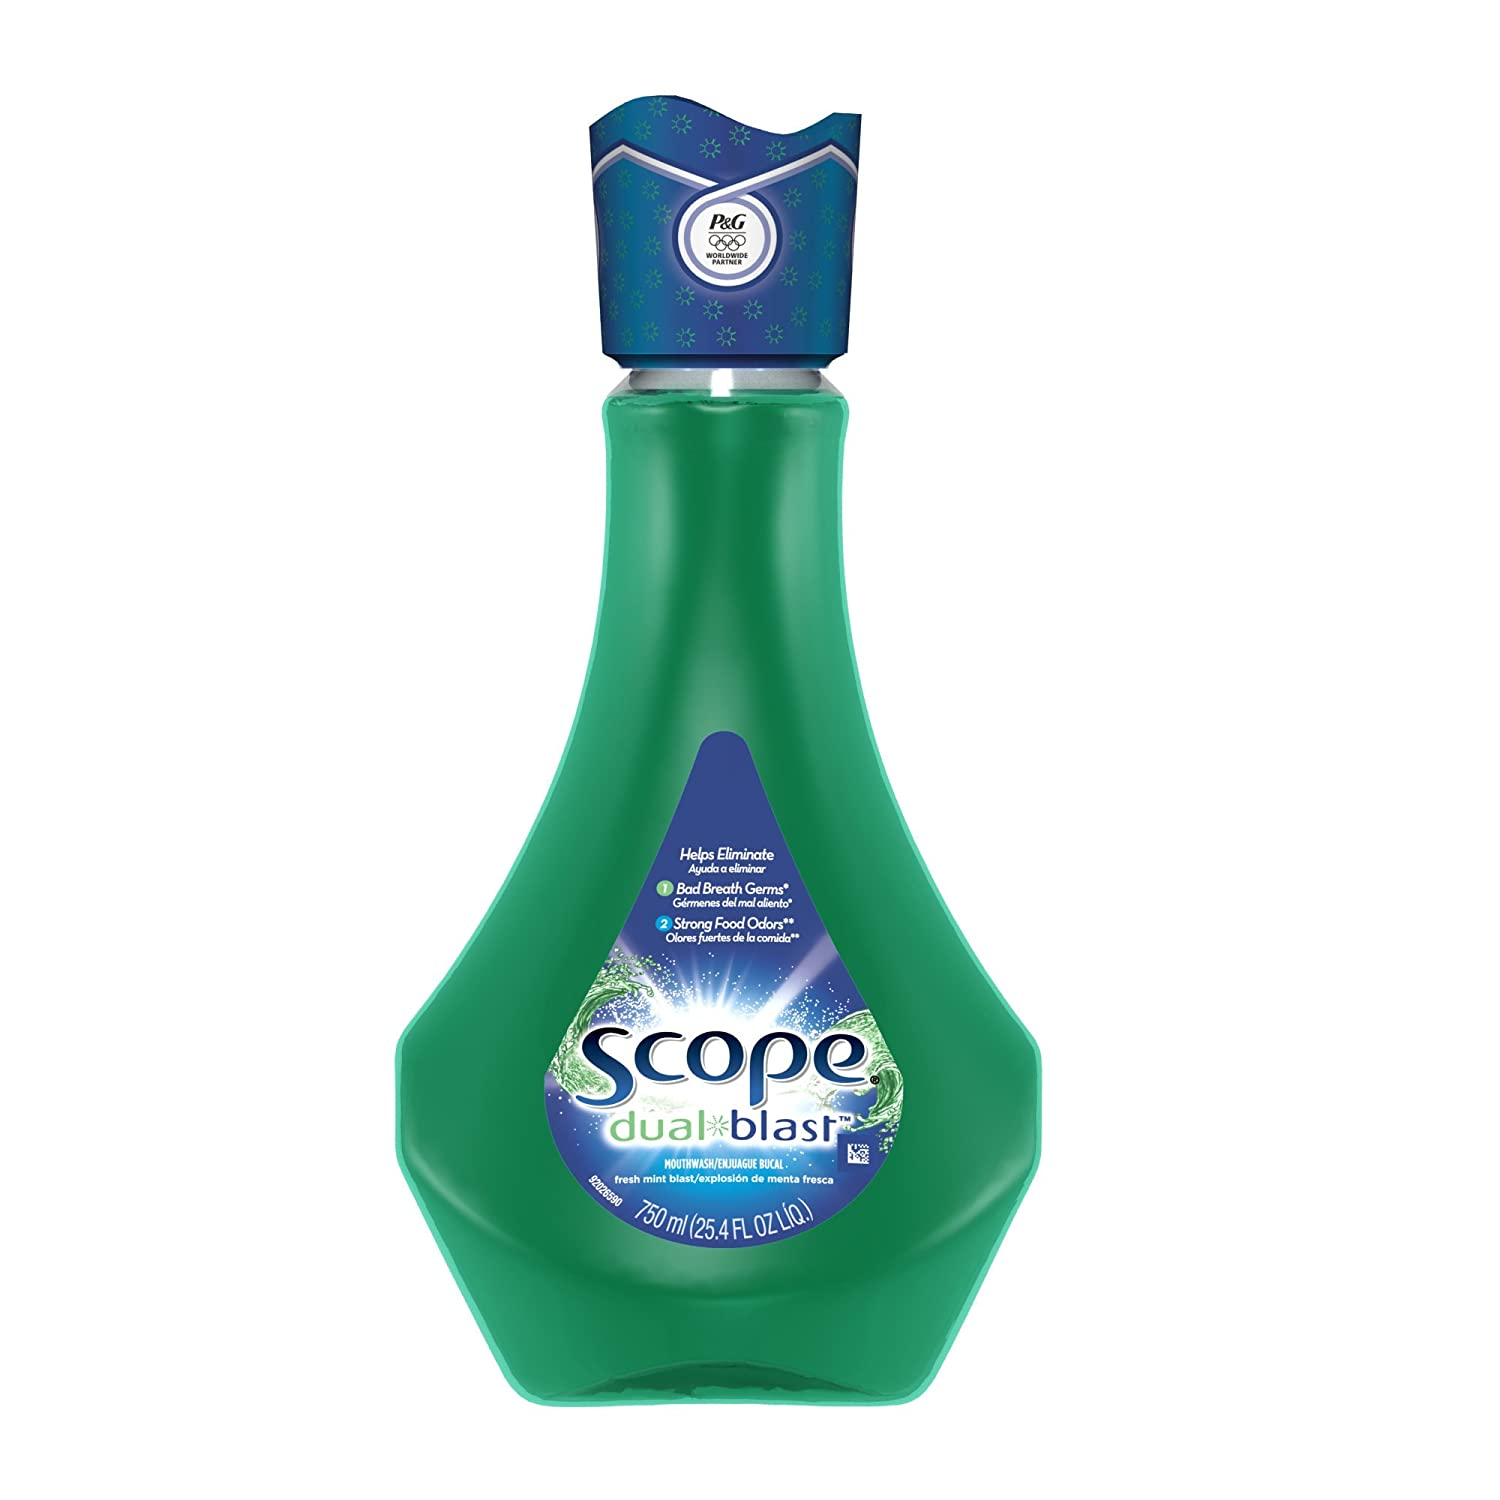 Scope Dual-Blast Fresh Mint Blast Mouthwash 25.4 Fl Oz $1.82